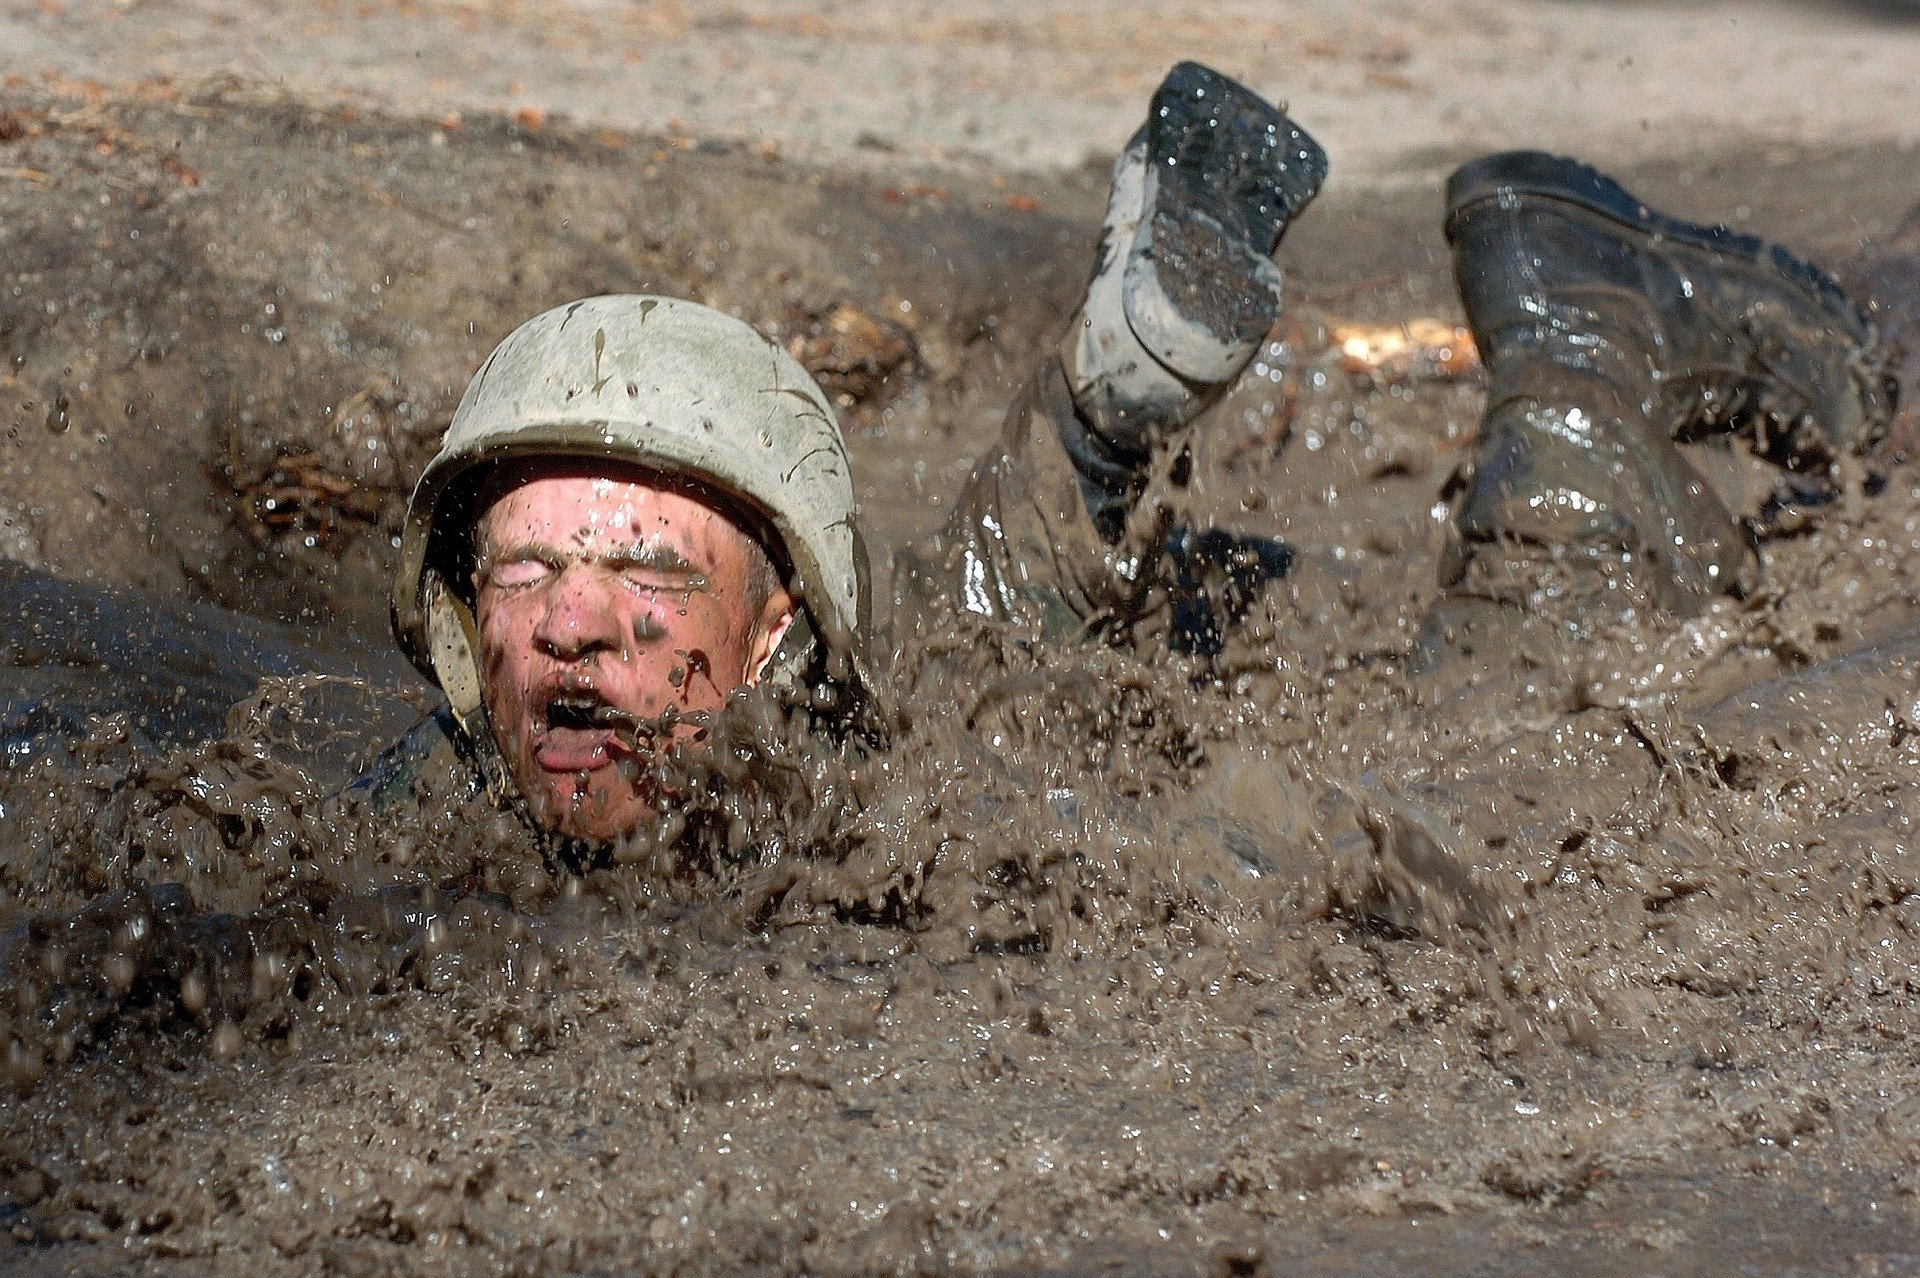 Soldier on the ground covered in mud. | Source: Pixabay